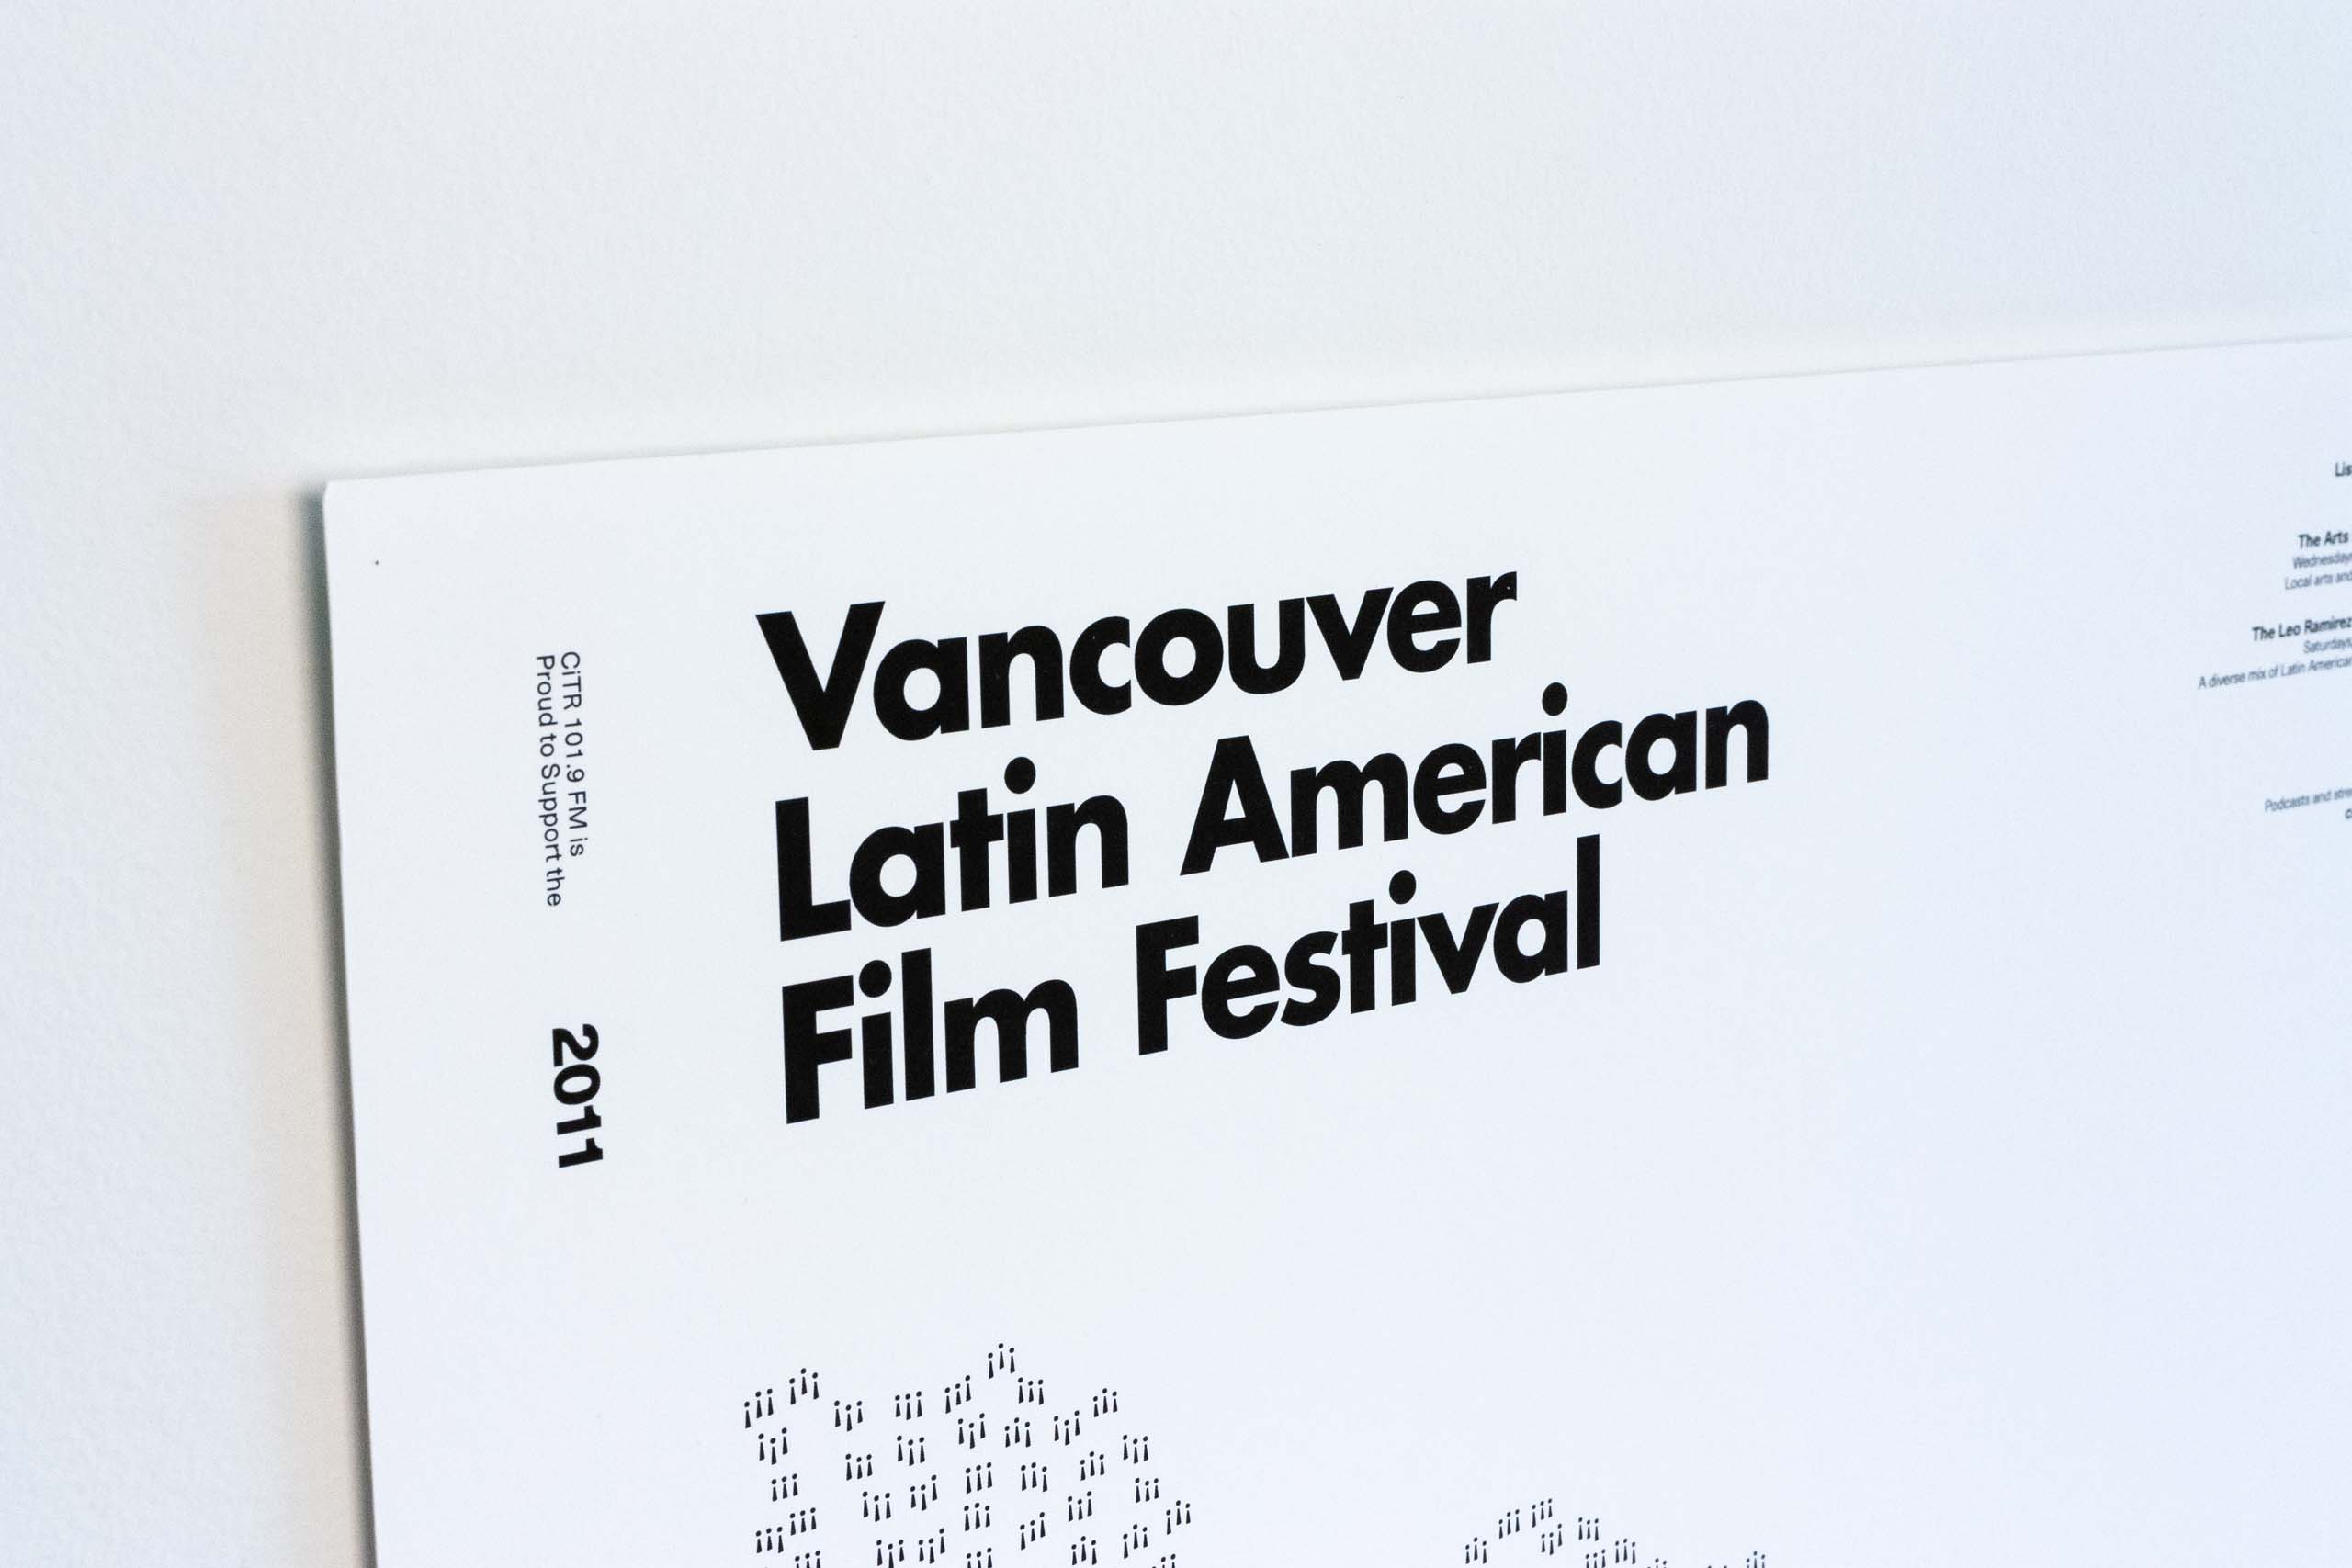 Close up of Latin American Festival Poster headline set in Futura typeface — by Dima Yagnyuk.